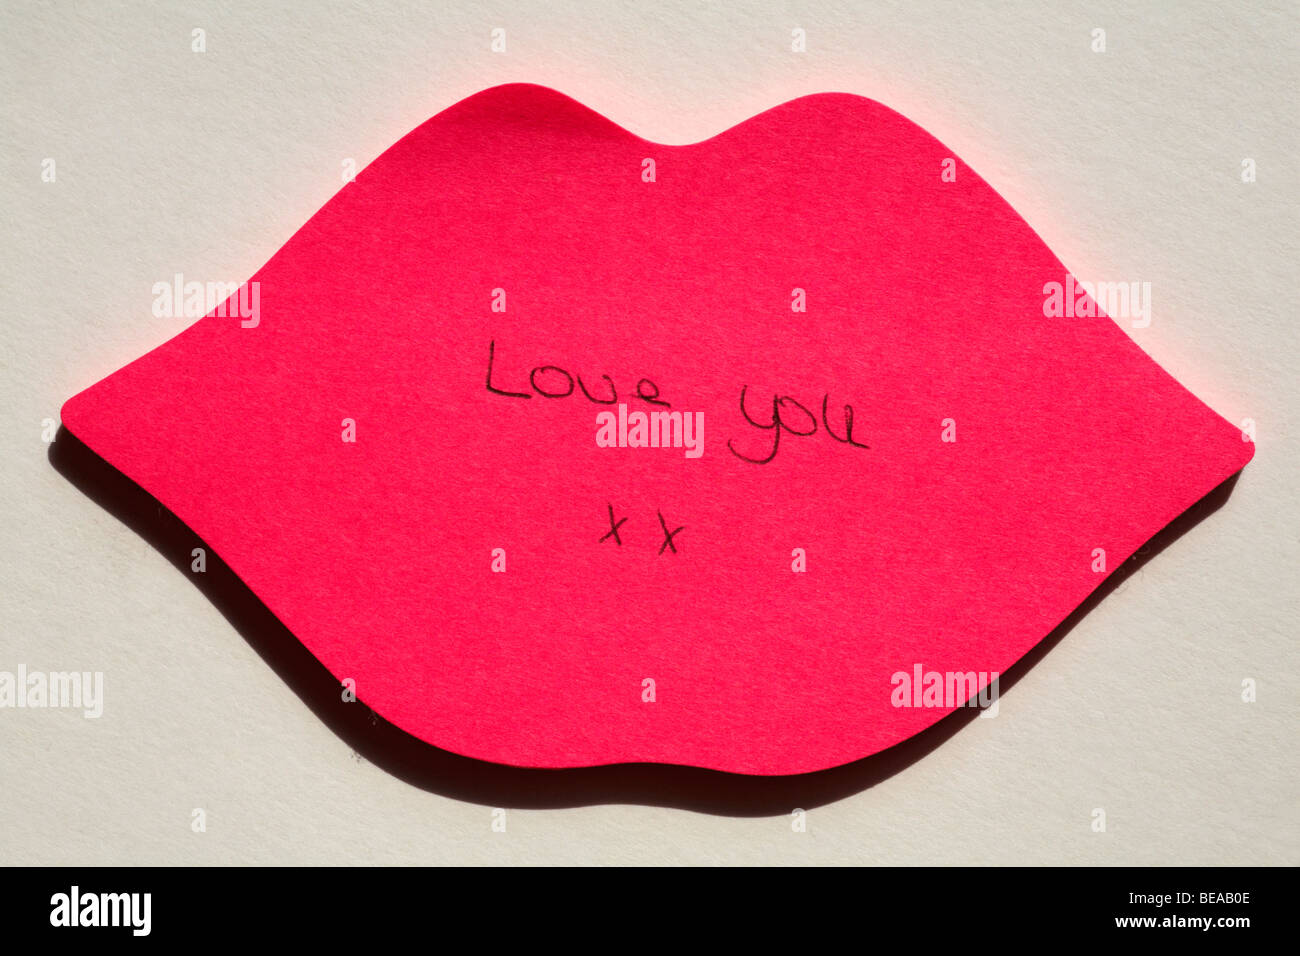 Love you xx message hand written on pink lips post it note close up isolated on white background - Stock Image